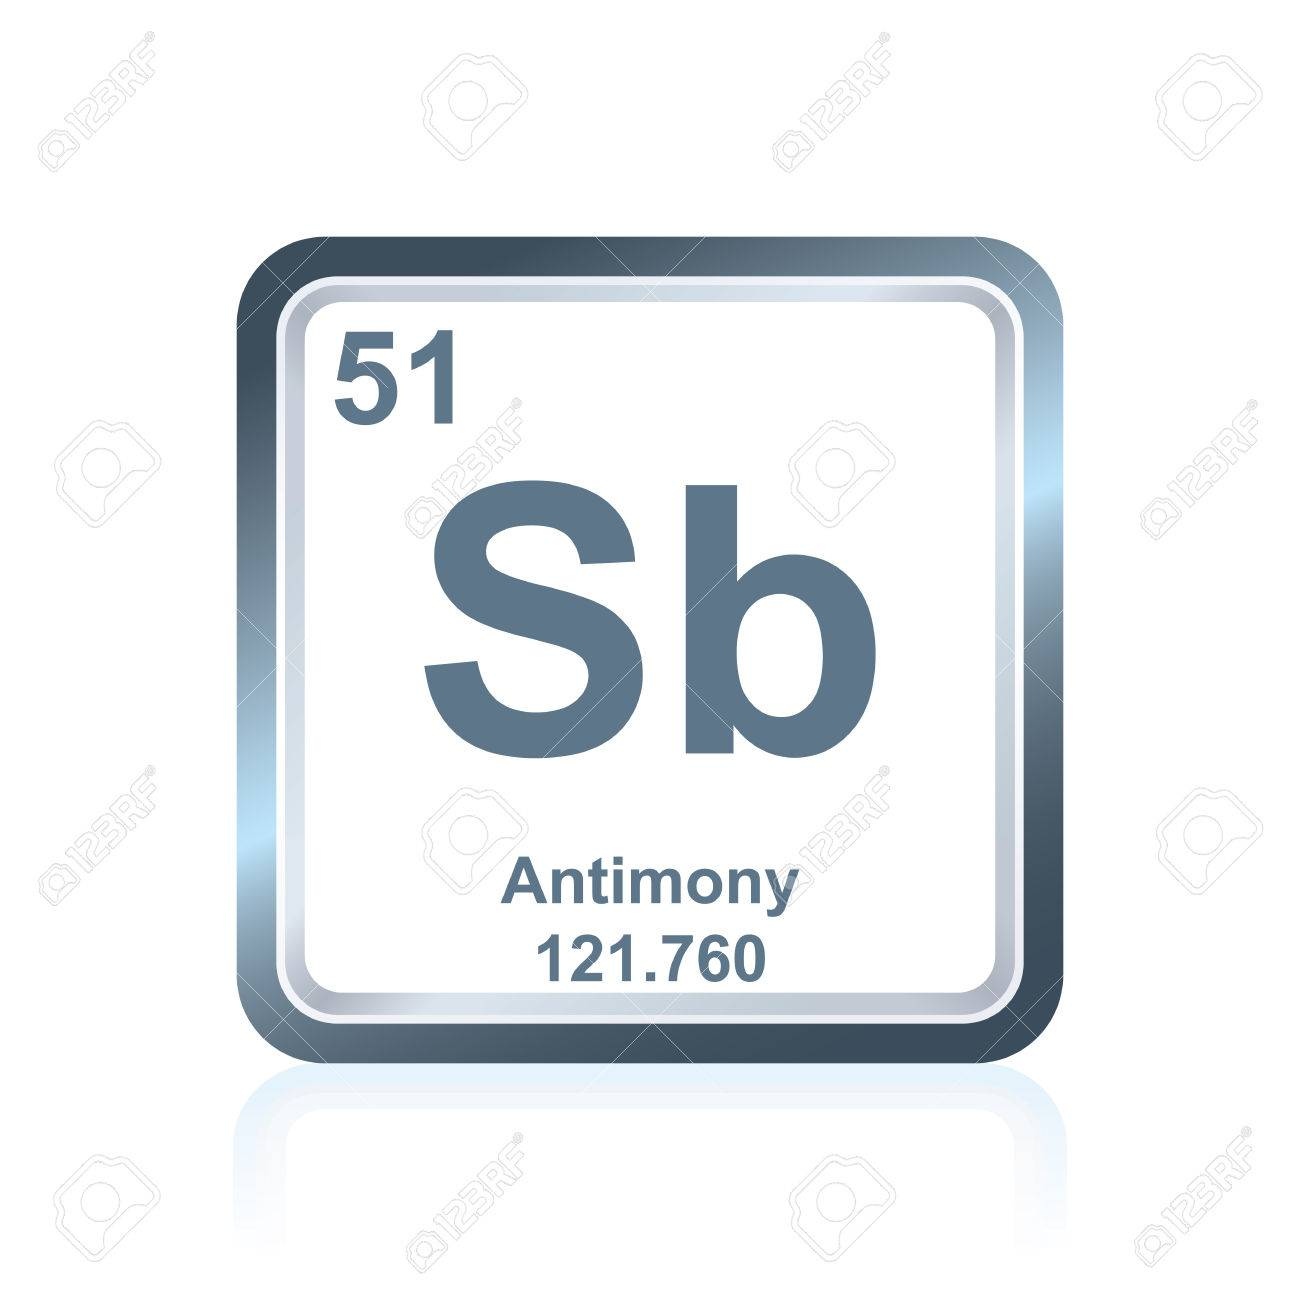 Symbol Of Chemical Element Antimony As Seen On The Periodic Table